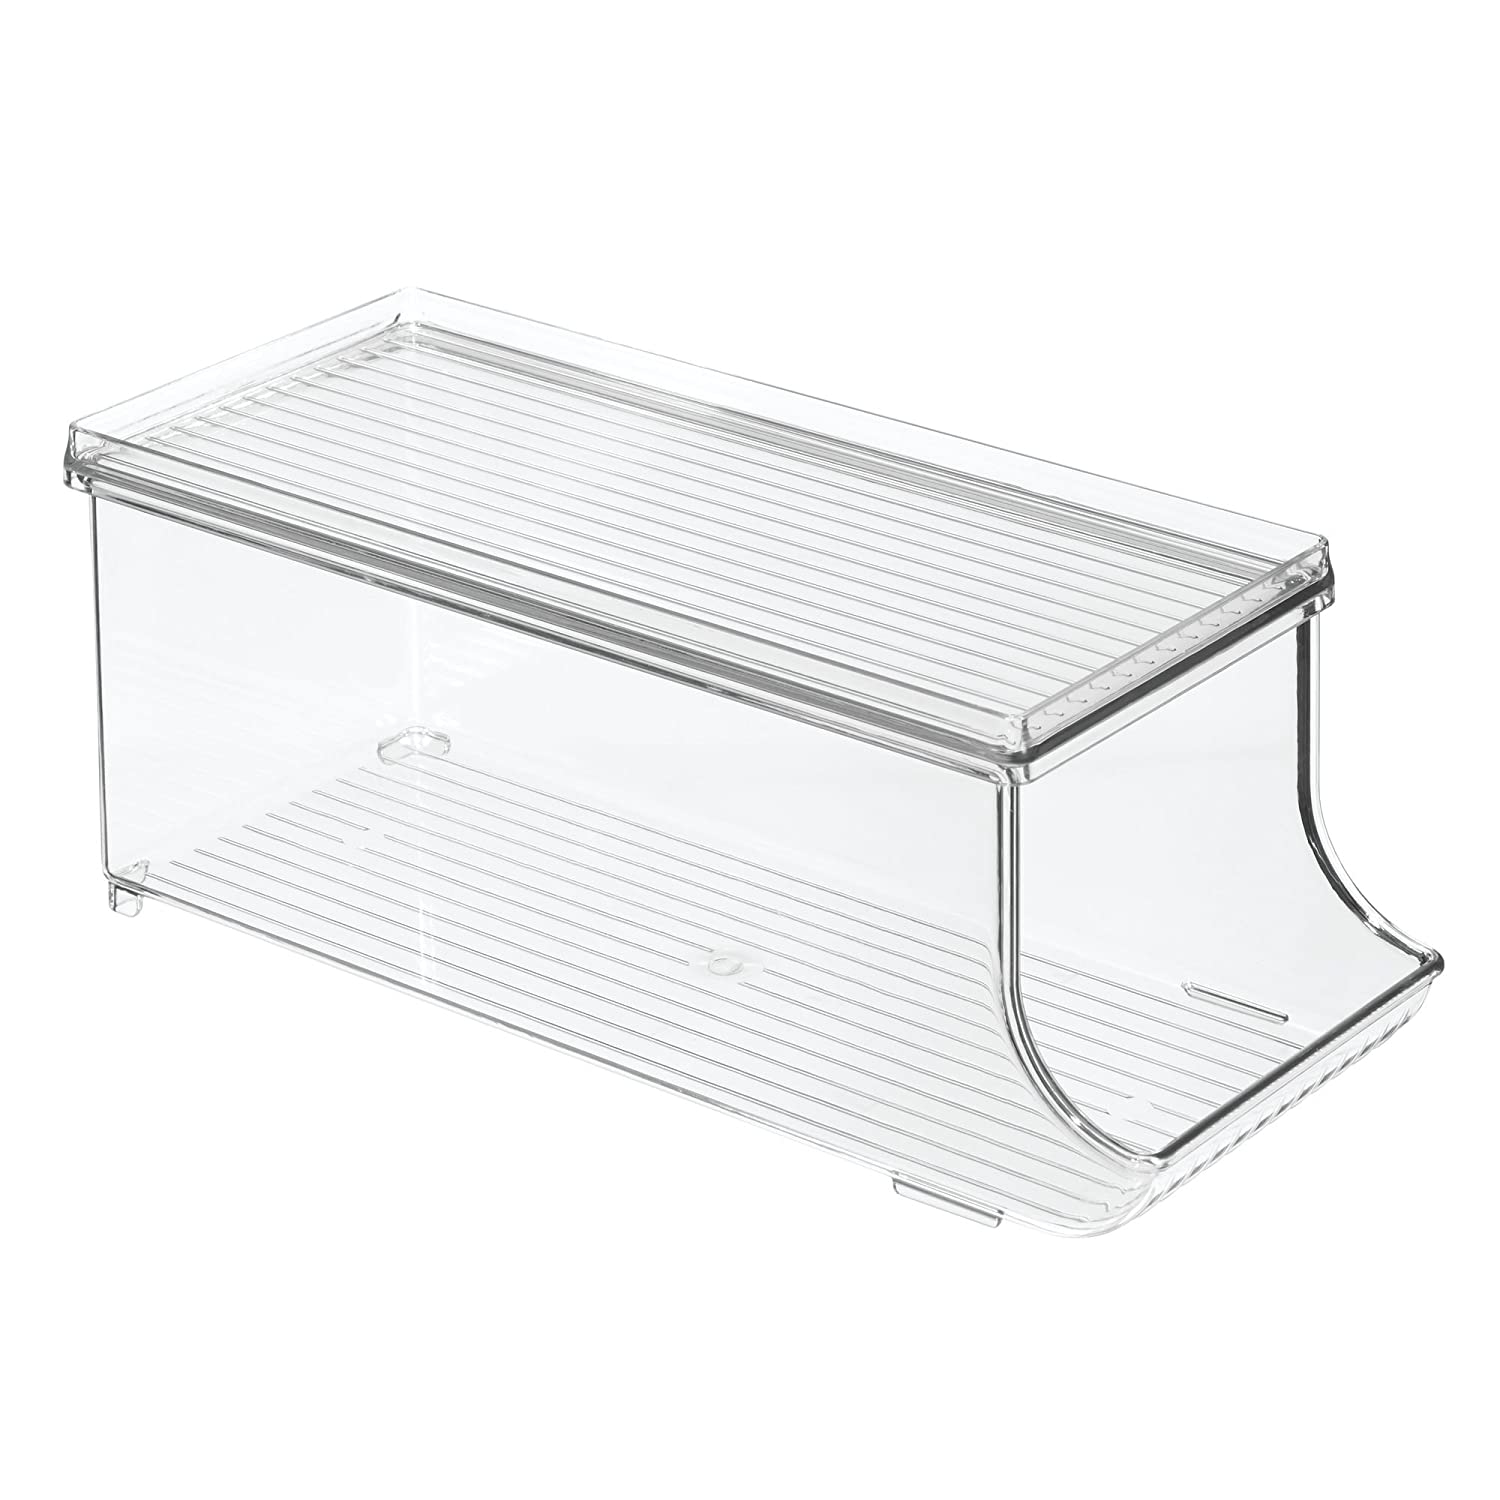 InterDesign Fridge/Freeze Binz Storage Boxes, Kitchen Storage Container with Space for 9 Drinks Cans, Plastic Clear 70938